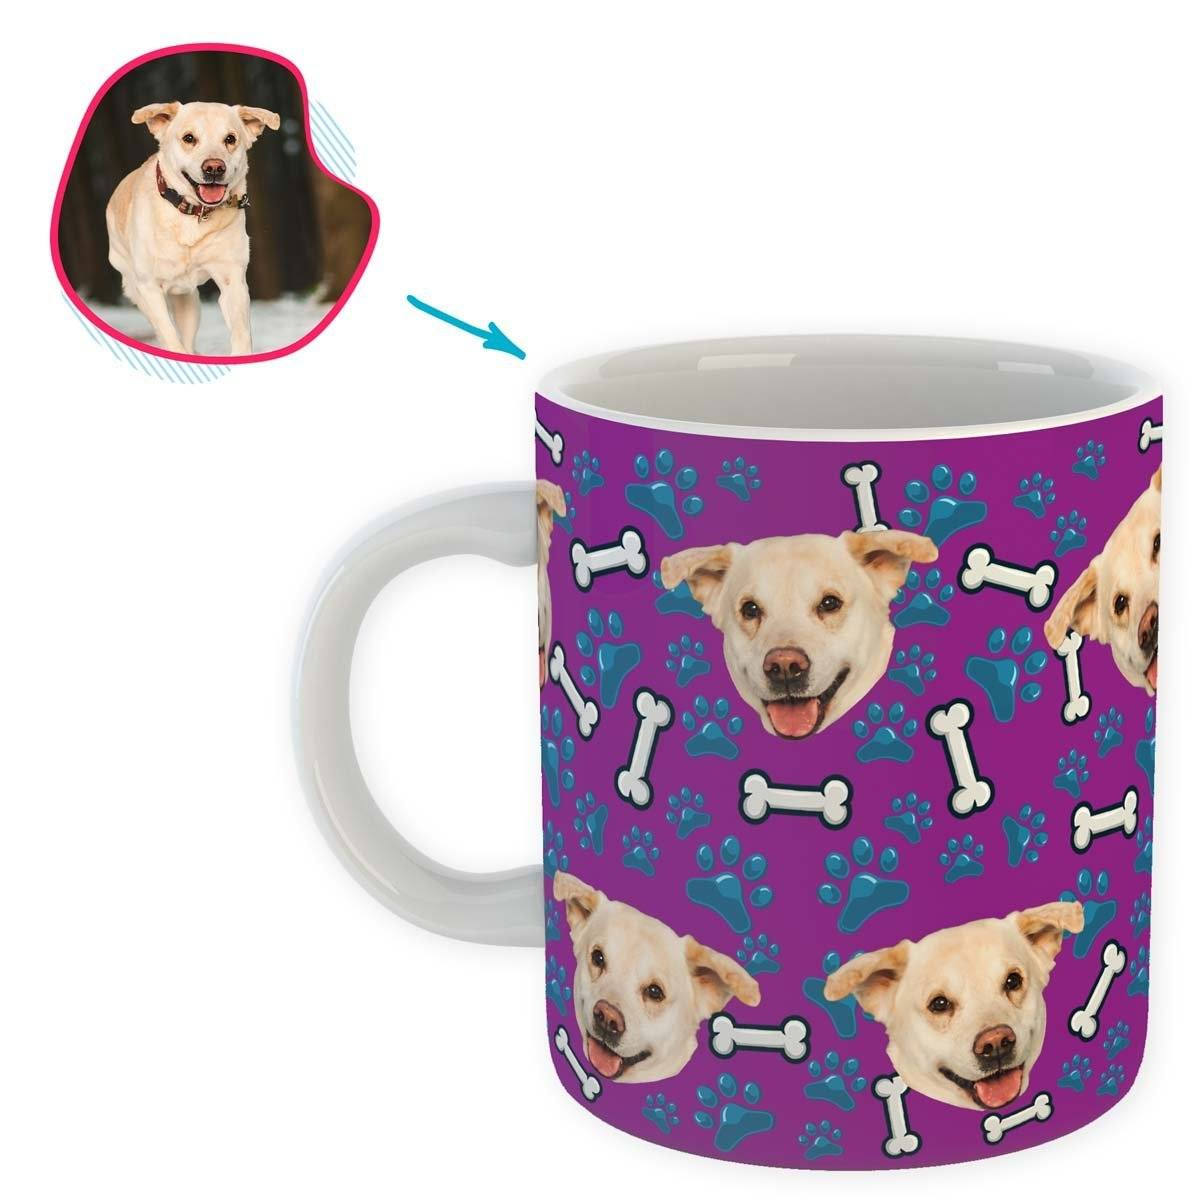 purple Dog mug personalized with photo of face printed on it